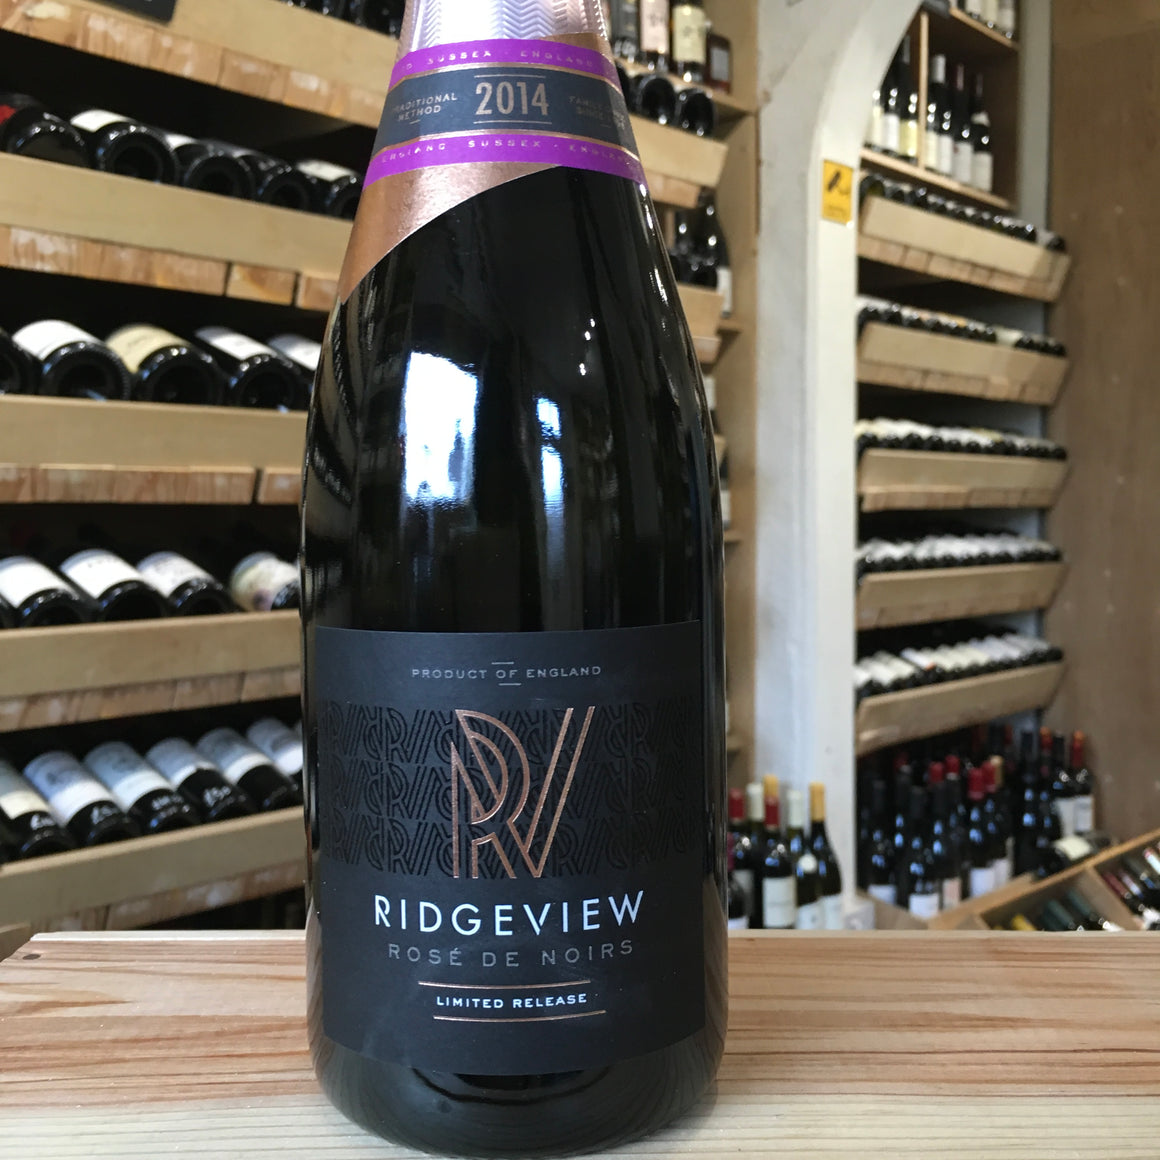 Ridgeview Rose de Noirs 2014